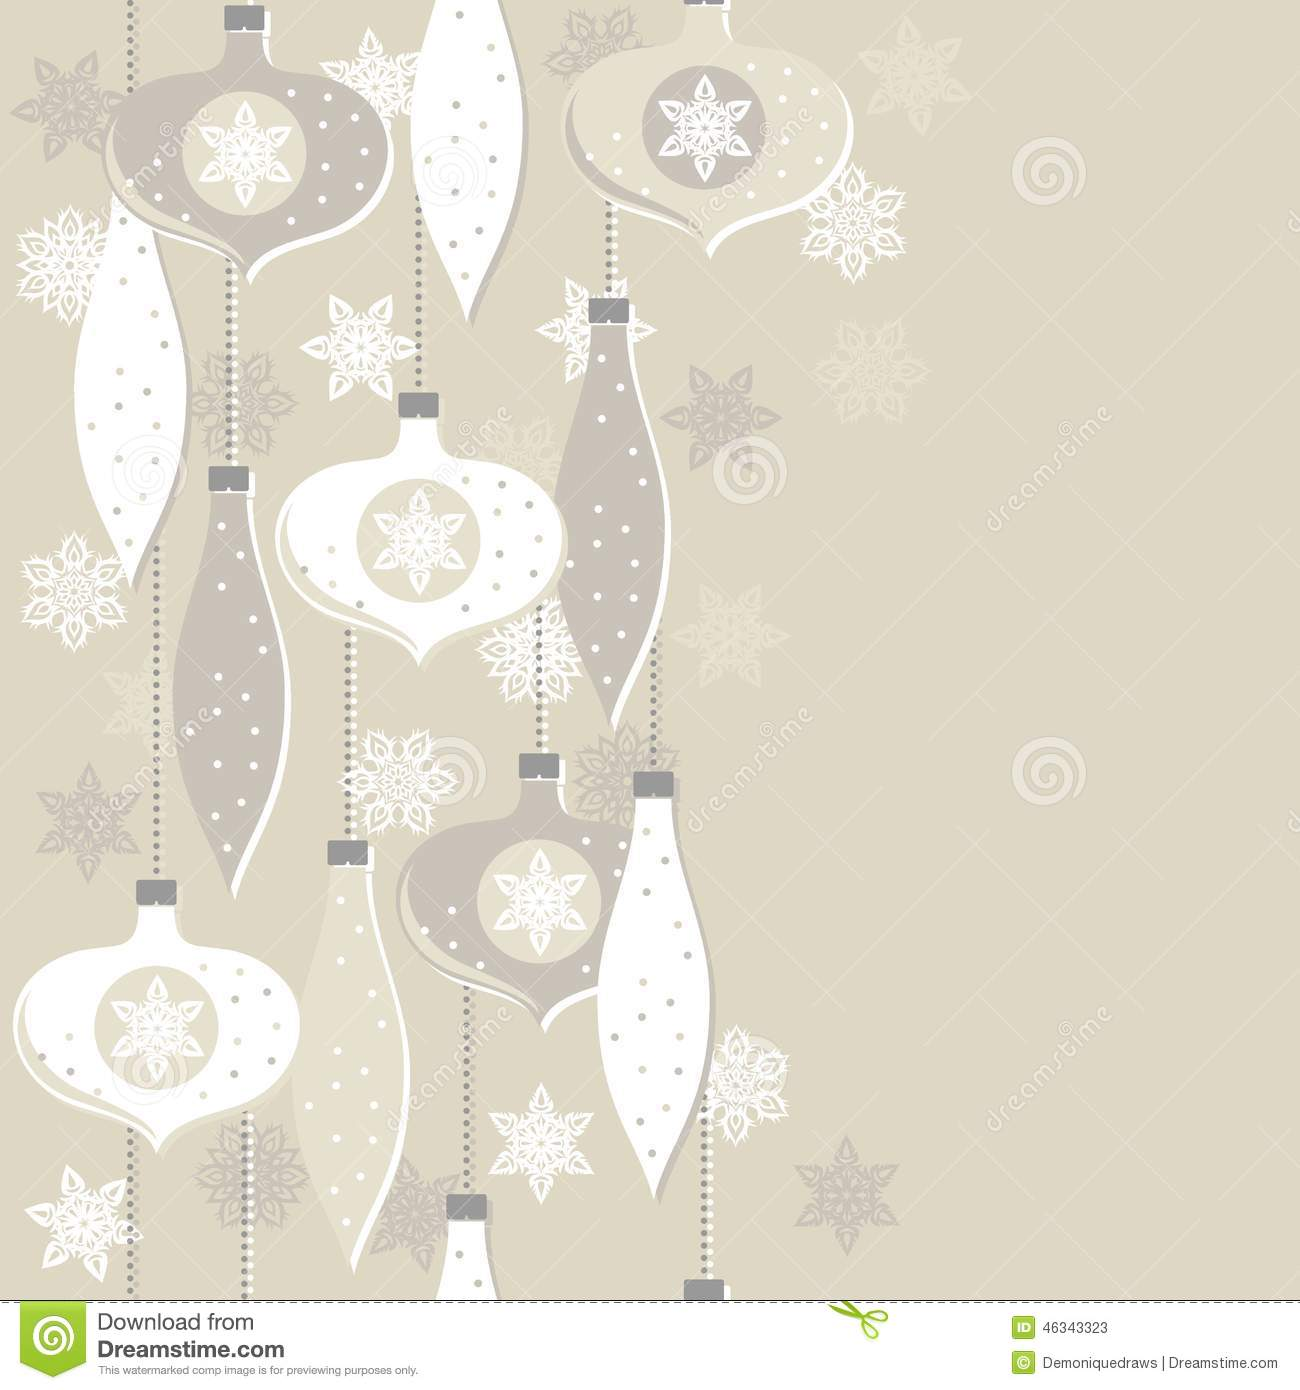 Beige Glass Balls And Lace Snowflakes Seamless Vertical